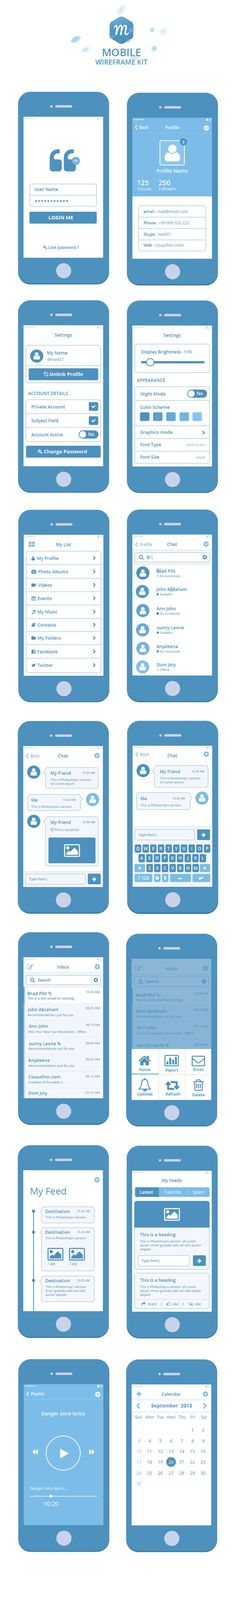 Free Wireframe Kit by prasad prechu, via Behance